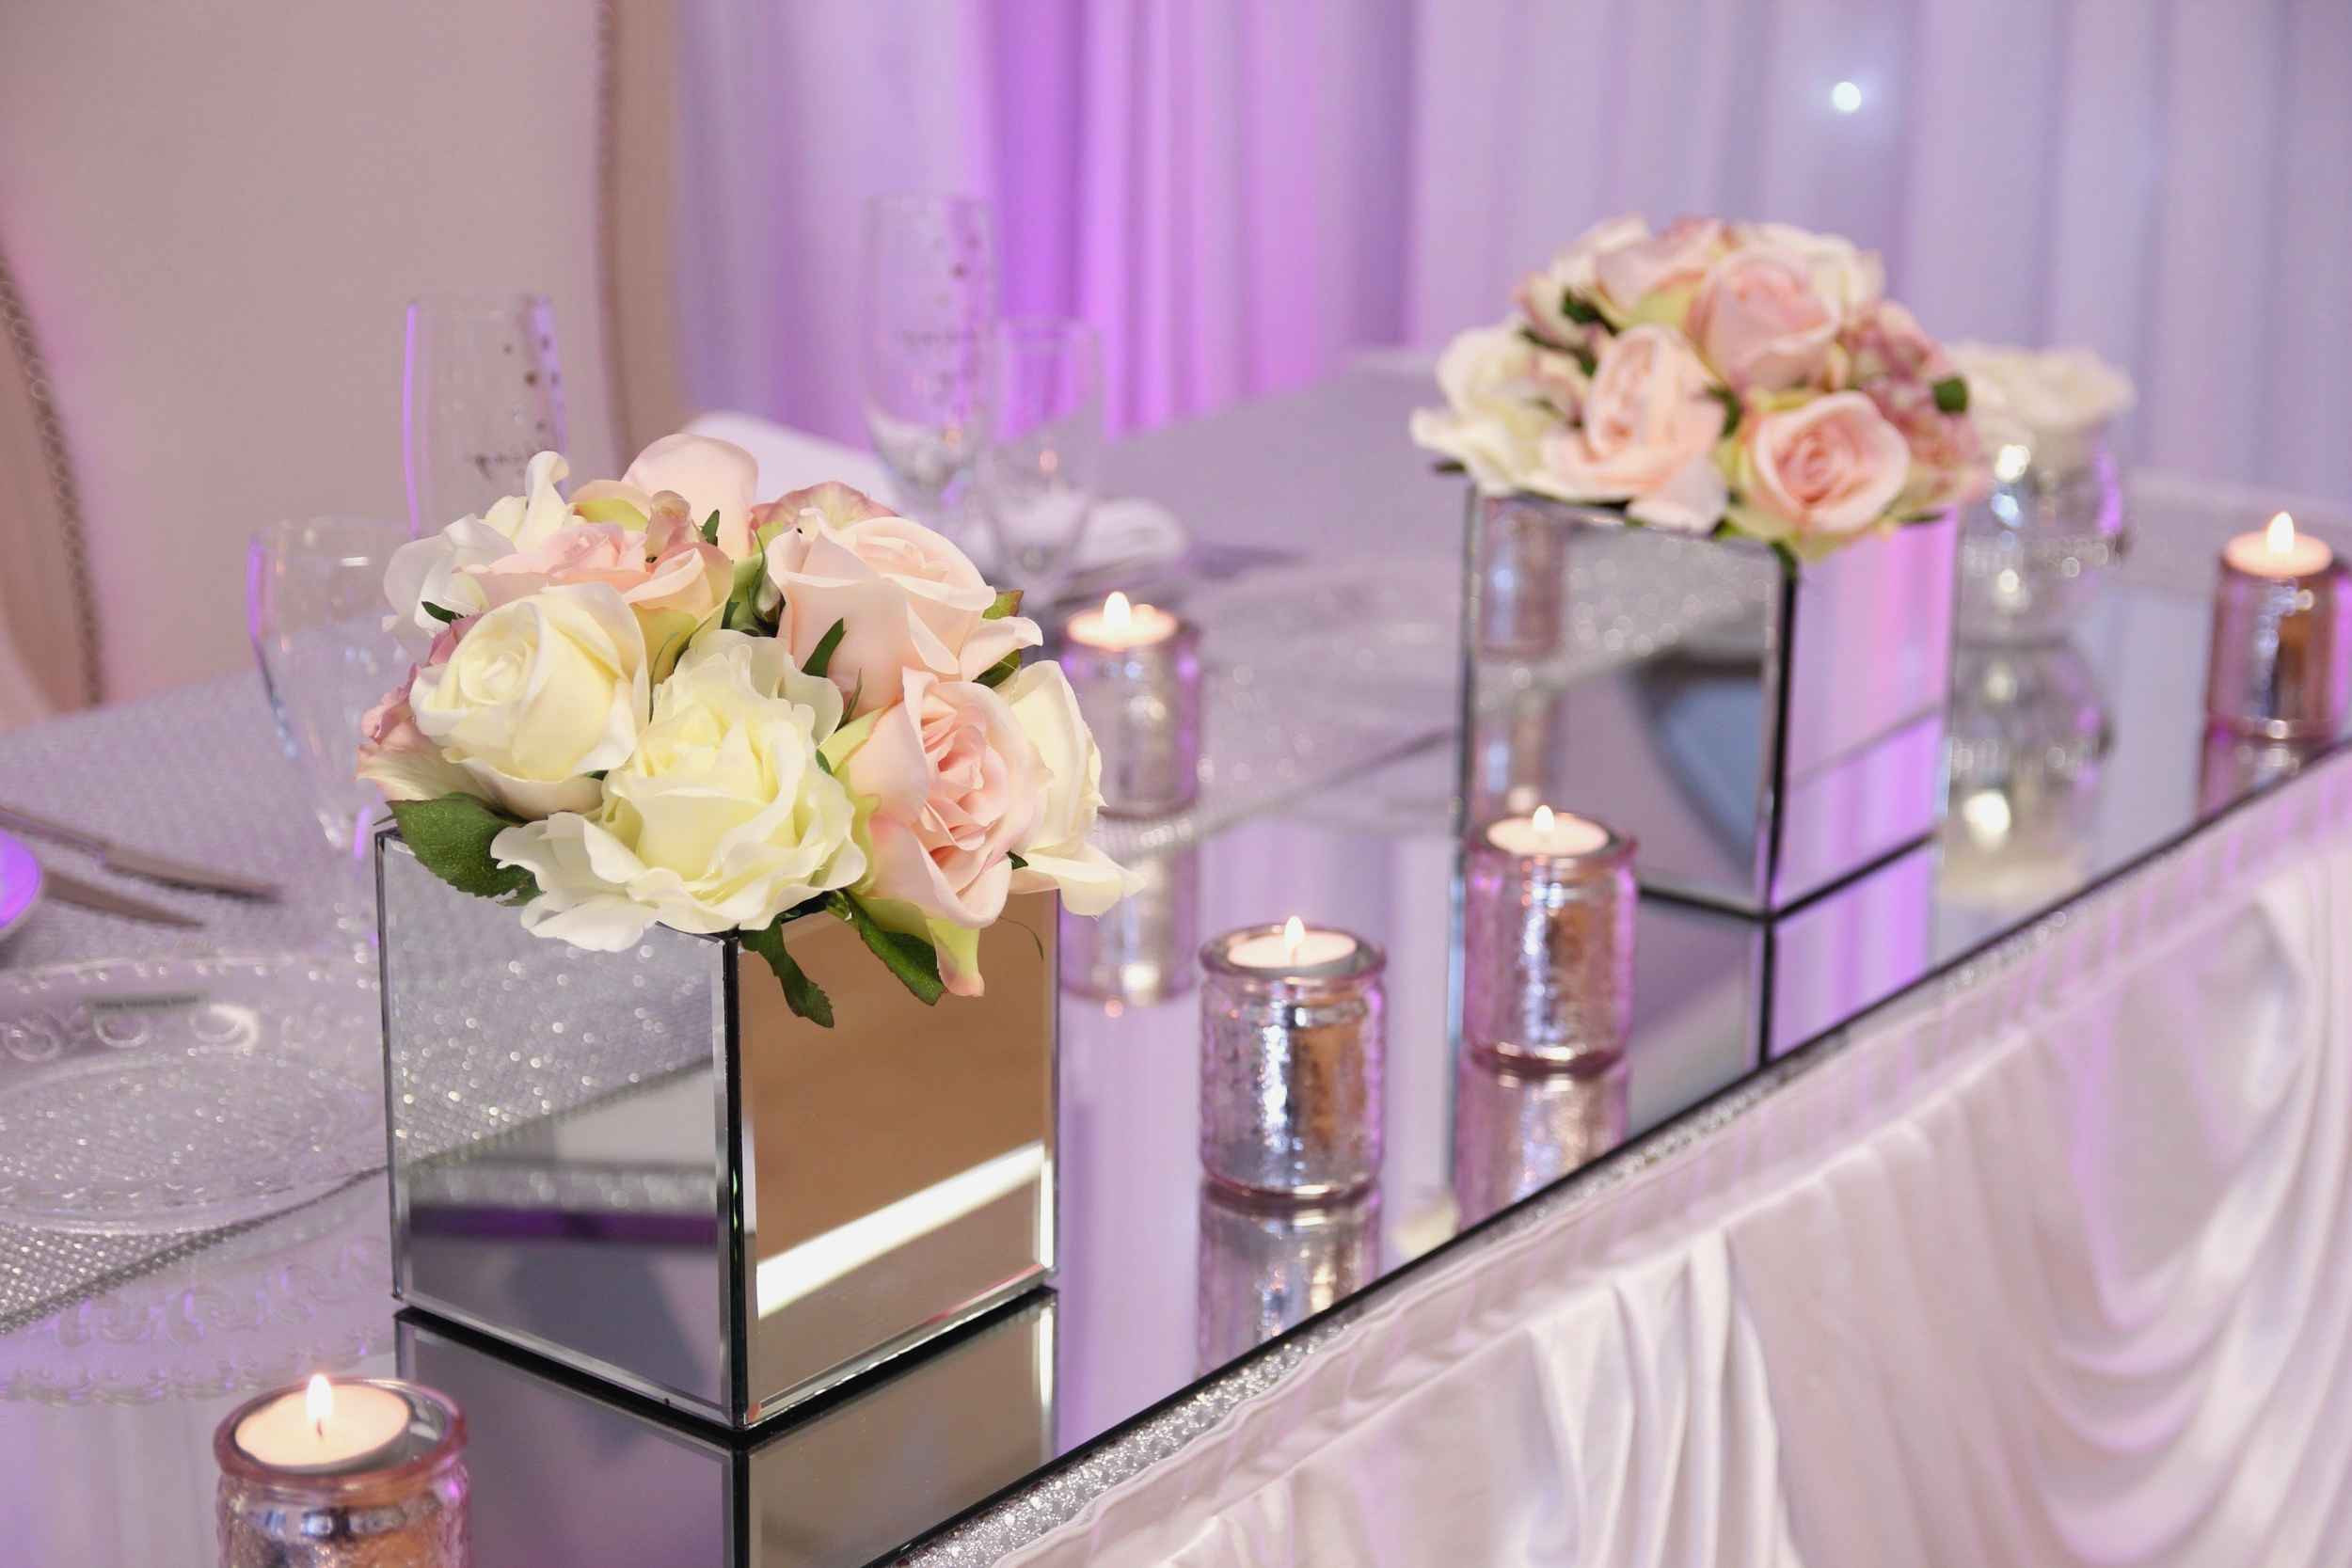 mirror cube vase of lovely purple wedding decor wedding theme regarding purple and lavender wedding decorations best mirror vase 8 1h vases mirrored square cube riser inch